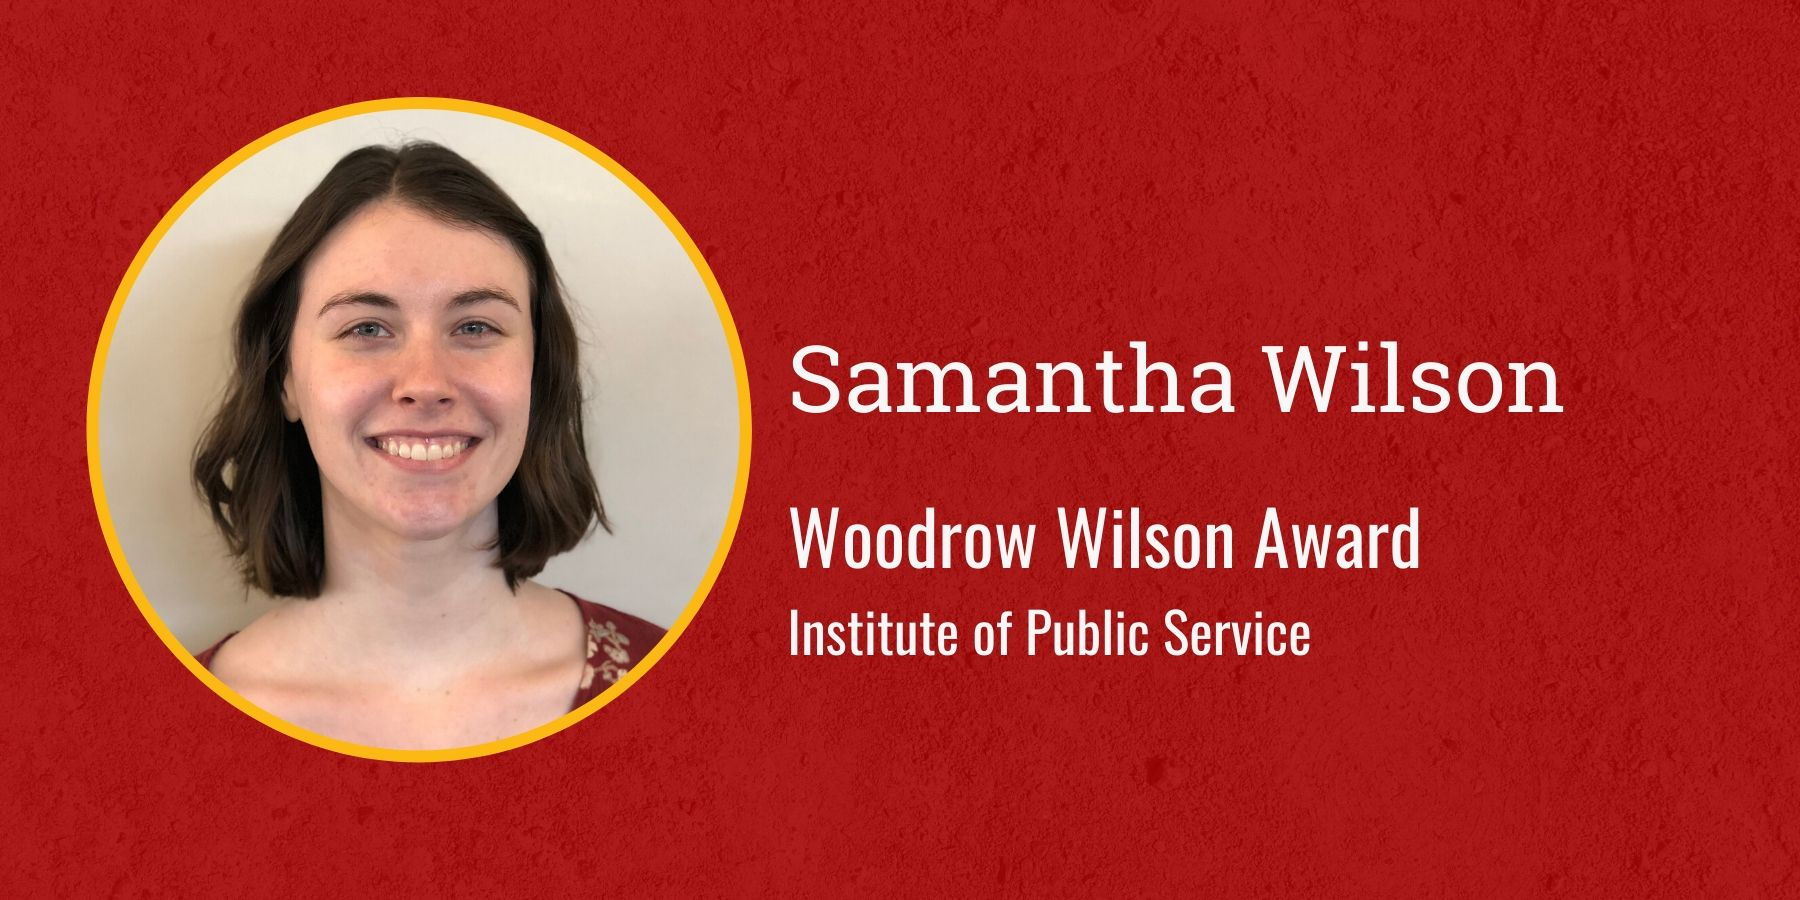 Photo of Samantha Wilson and text Woodrow Wilson Award, Institute of Public Service